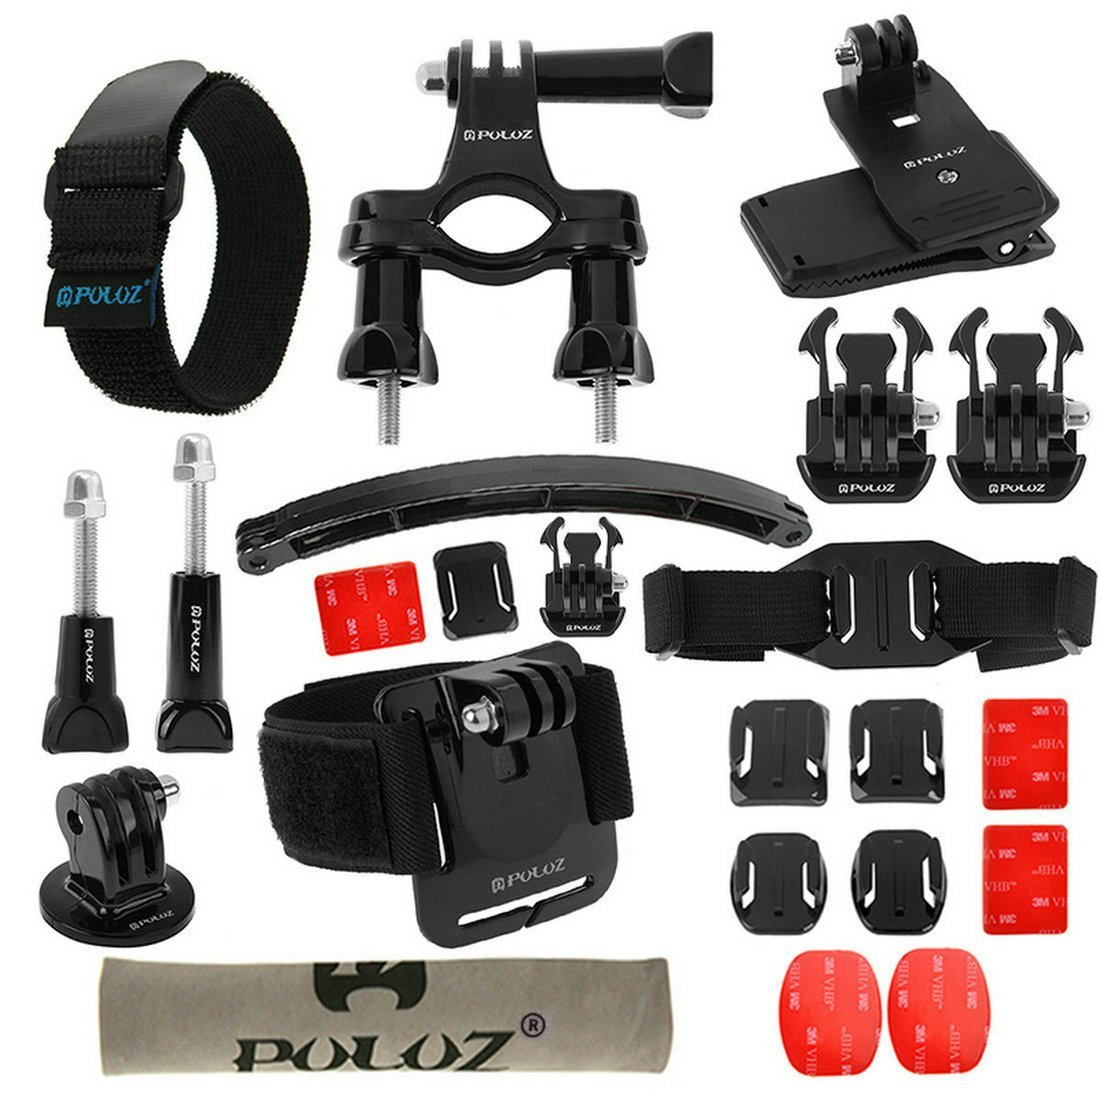 PULUZ 24 in 1 Bike Mount Accessories Kit(Wrist Strap+Helmet Strap+Extension Arm+Quick Release Buckles+Surface Mounts+Adhesive Stickers+Tripod Adapter+Storage Bag+Handlebar Mount+Screw)for Gopro,Xiaoyi